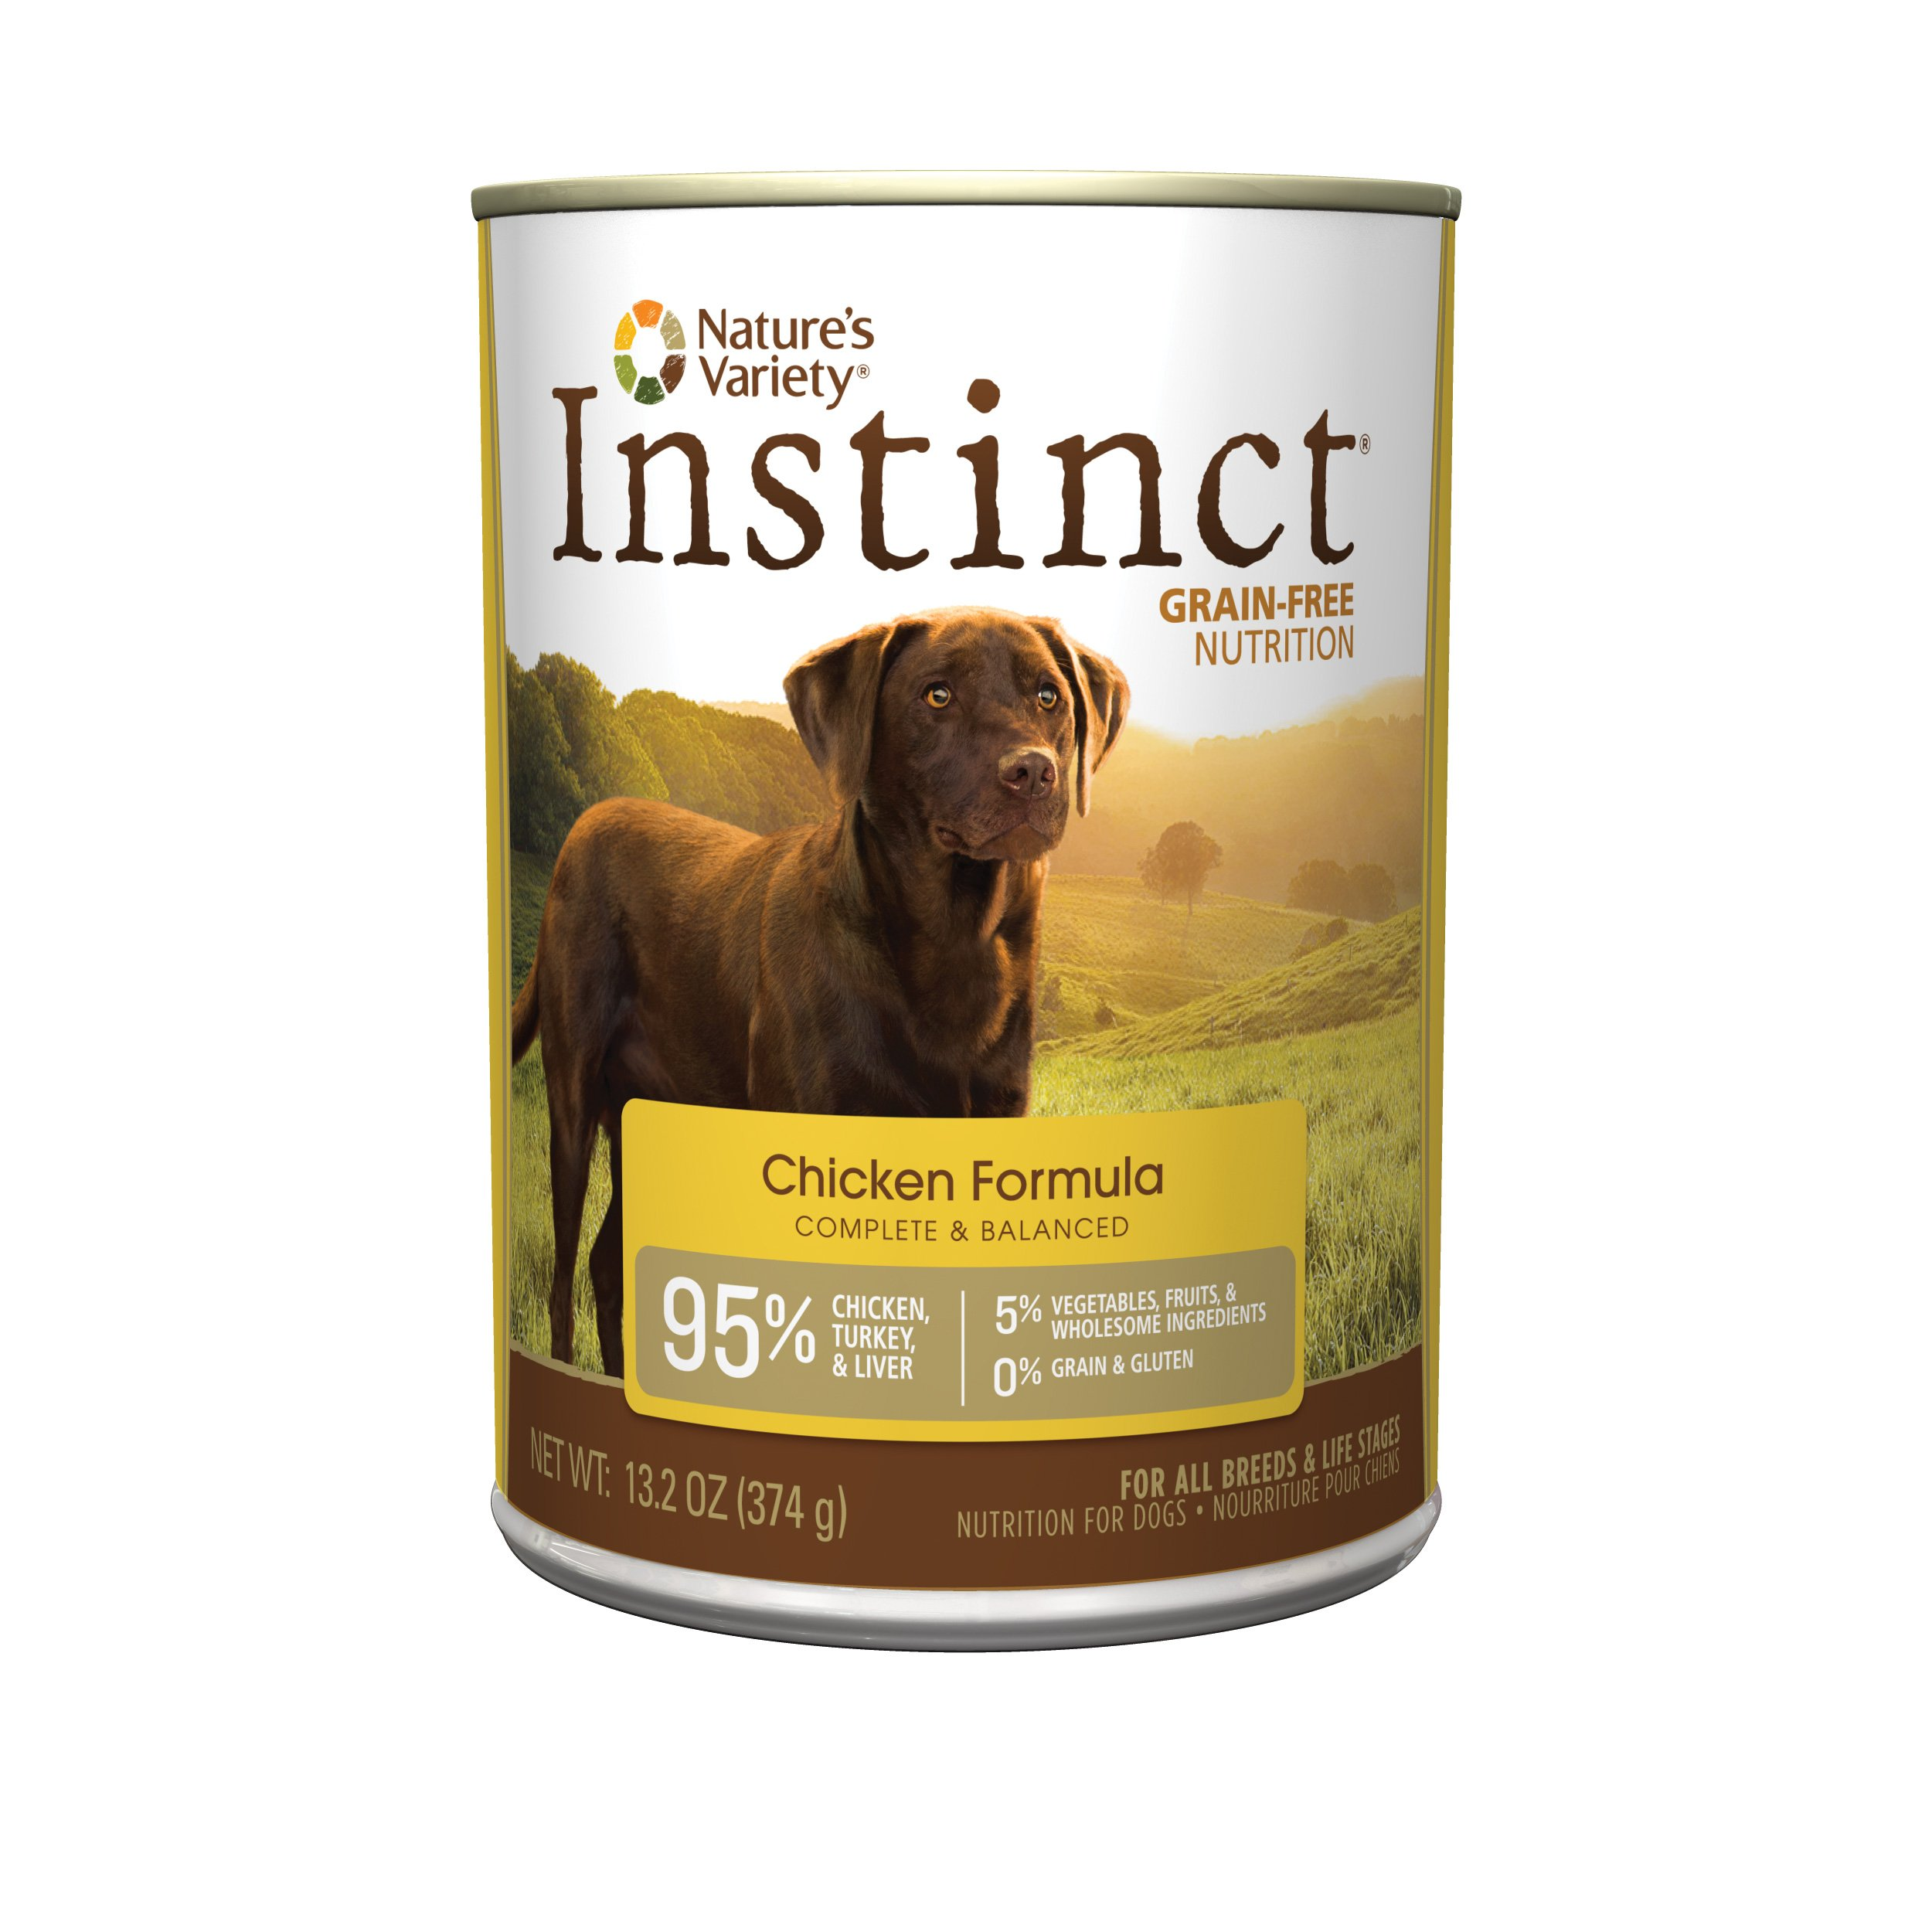 Nature'S Variety Instinct Grain Free Chicken Formula Natural Wet Canned Dog Food By, 13.2 Oz. Cans (Case Of 12) by Nature's Variety